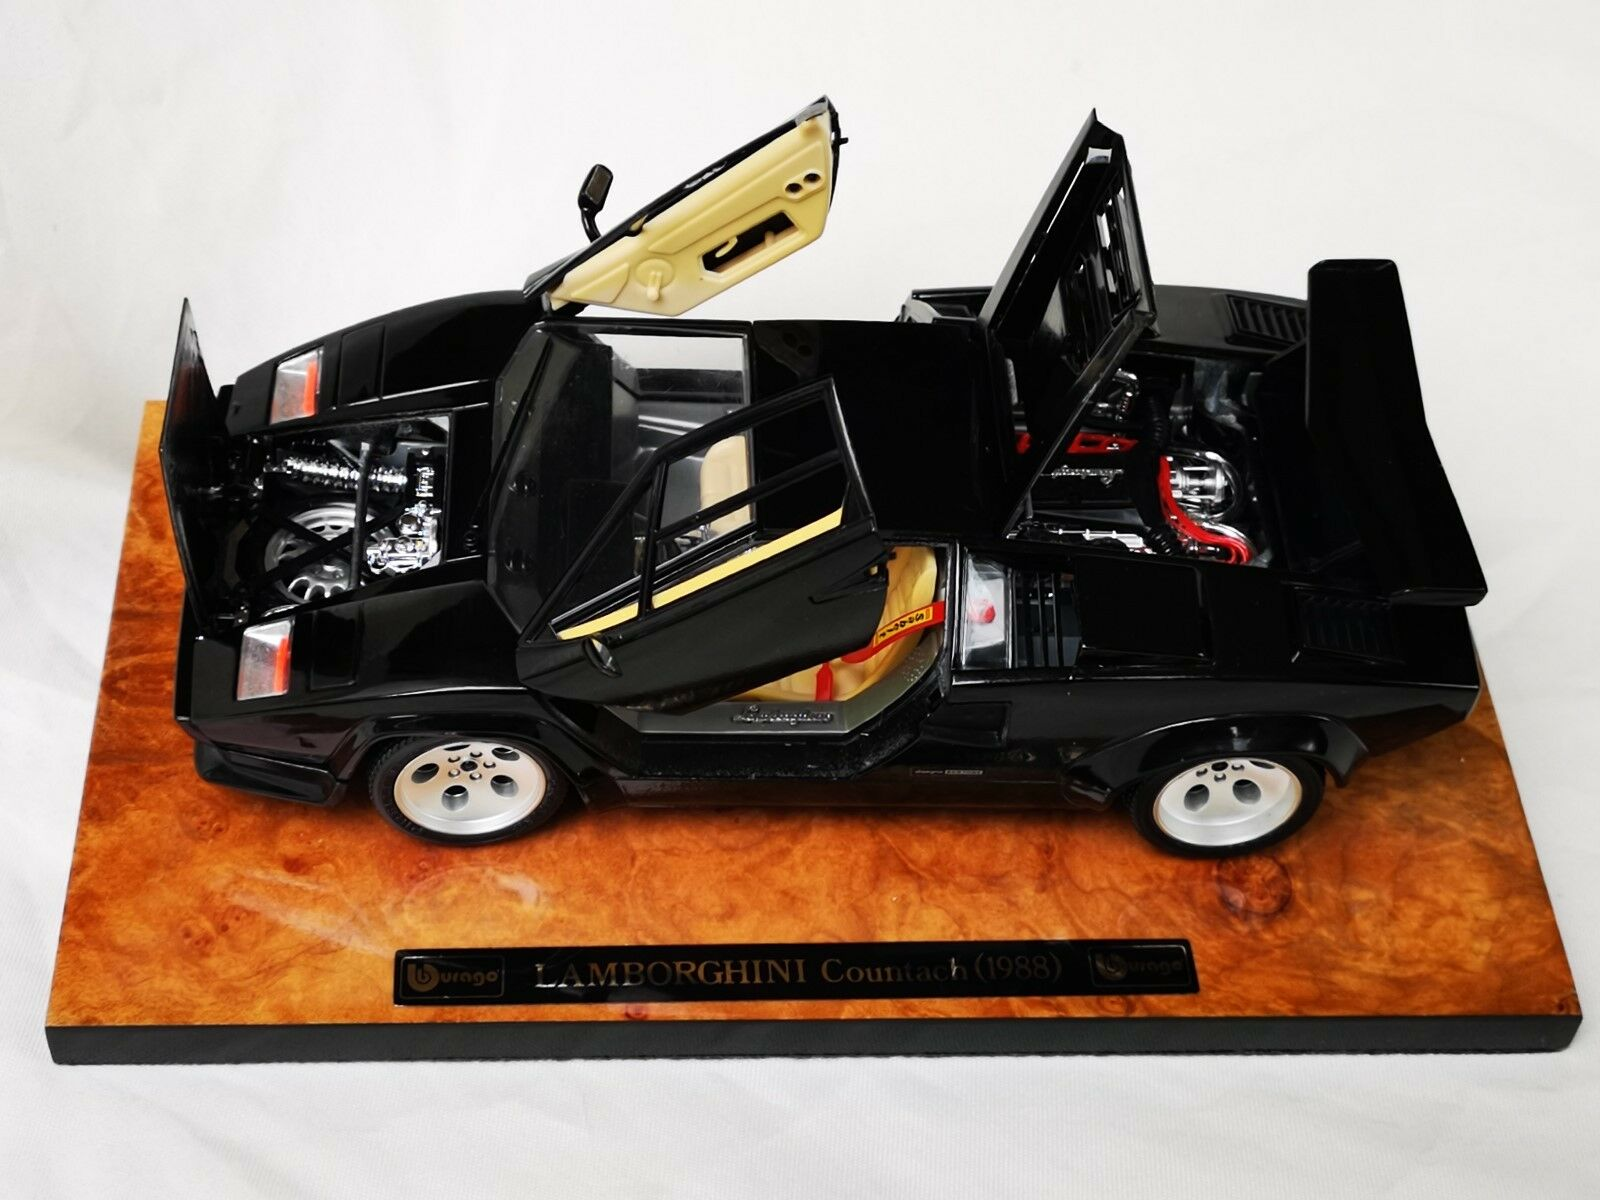 BBburago Lamborghini Countach (1988) no. 3737 1 18 Boxed